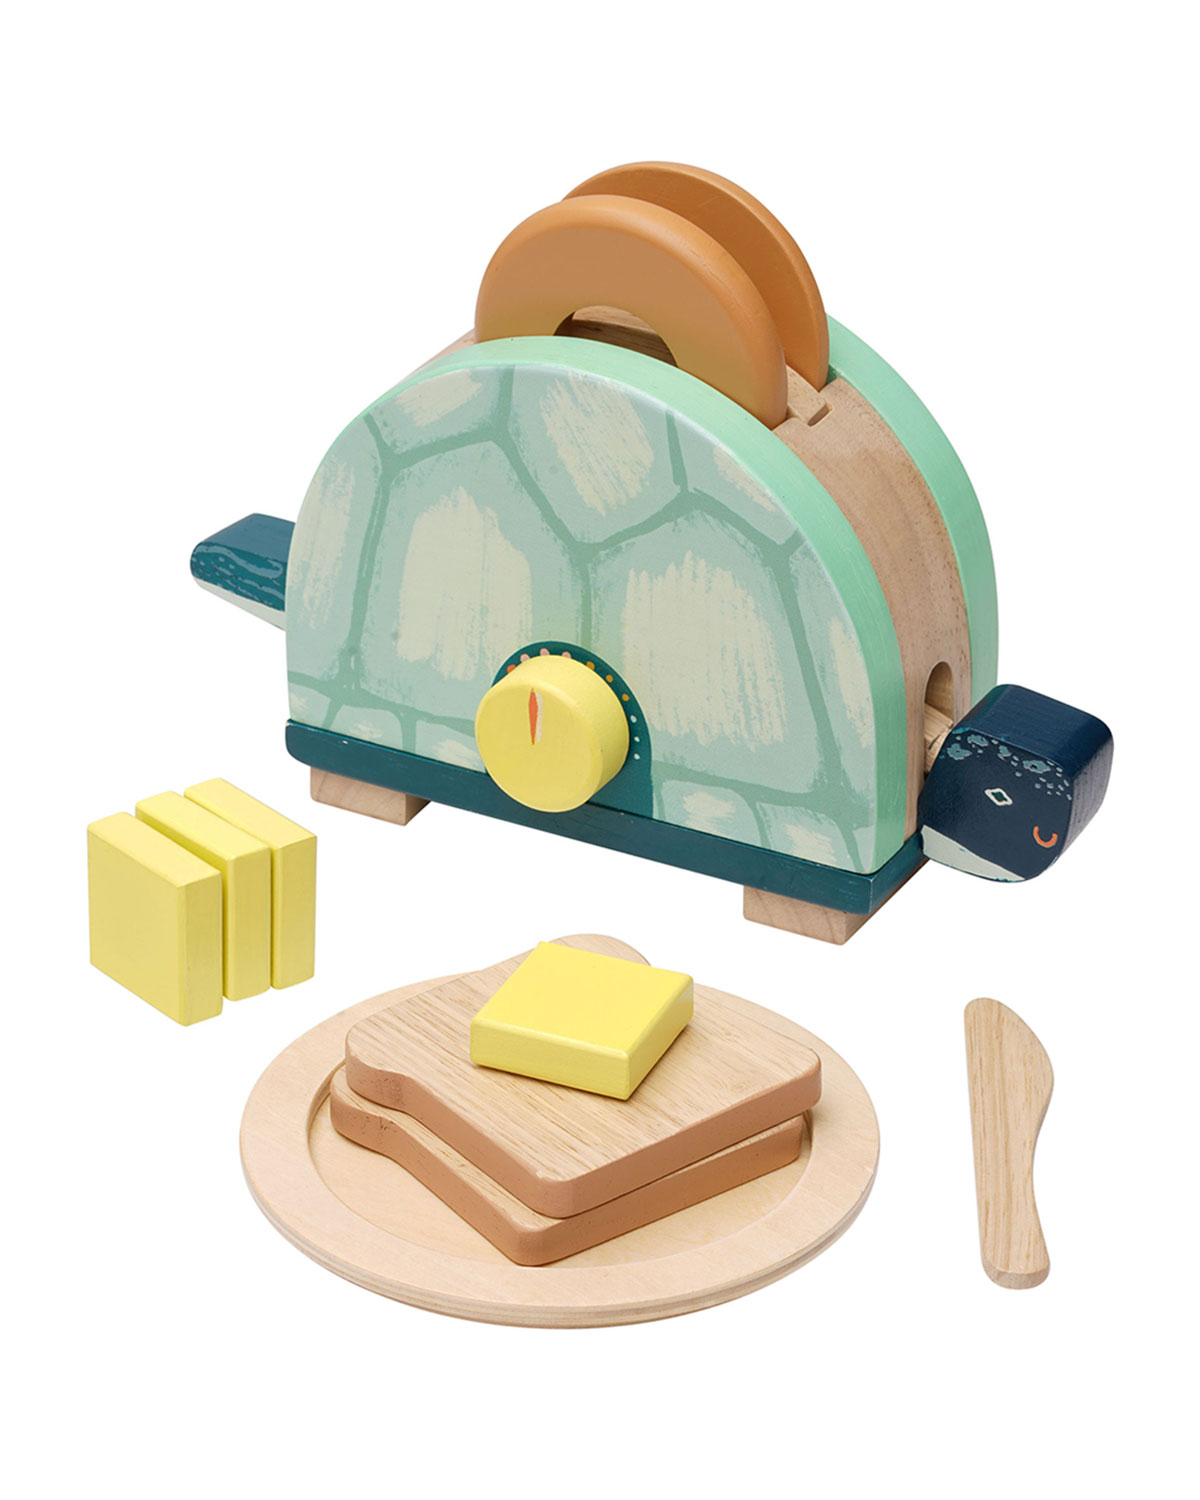 Toasty Turtle Pretend Play Cooking Wooden Toy Set